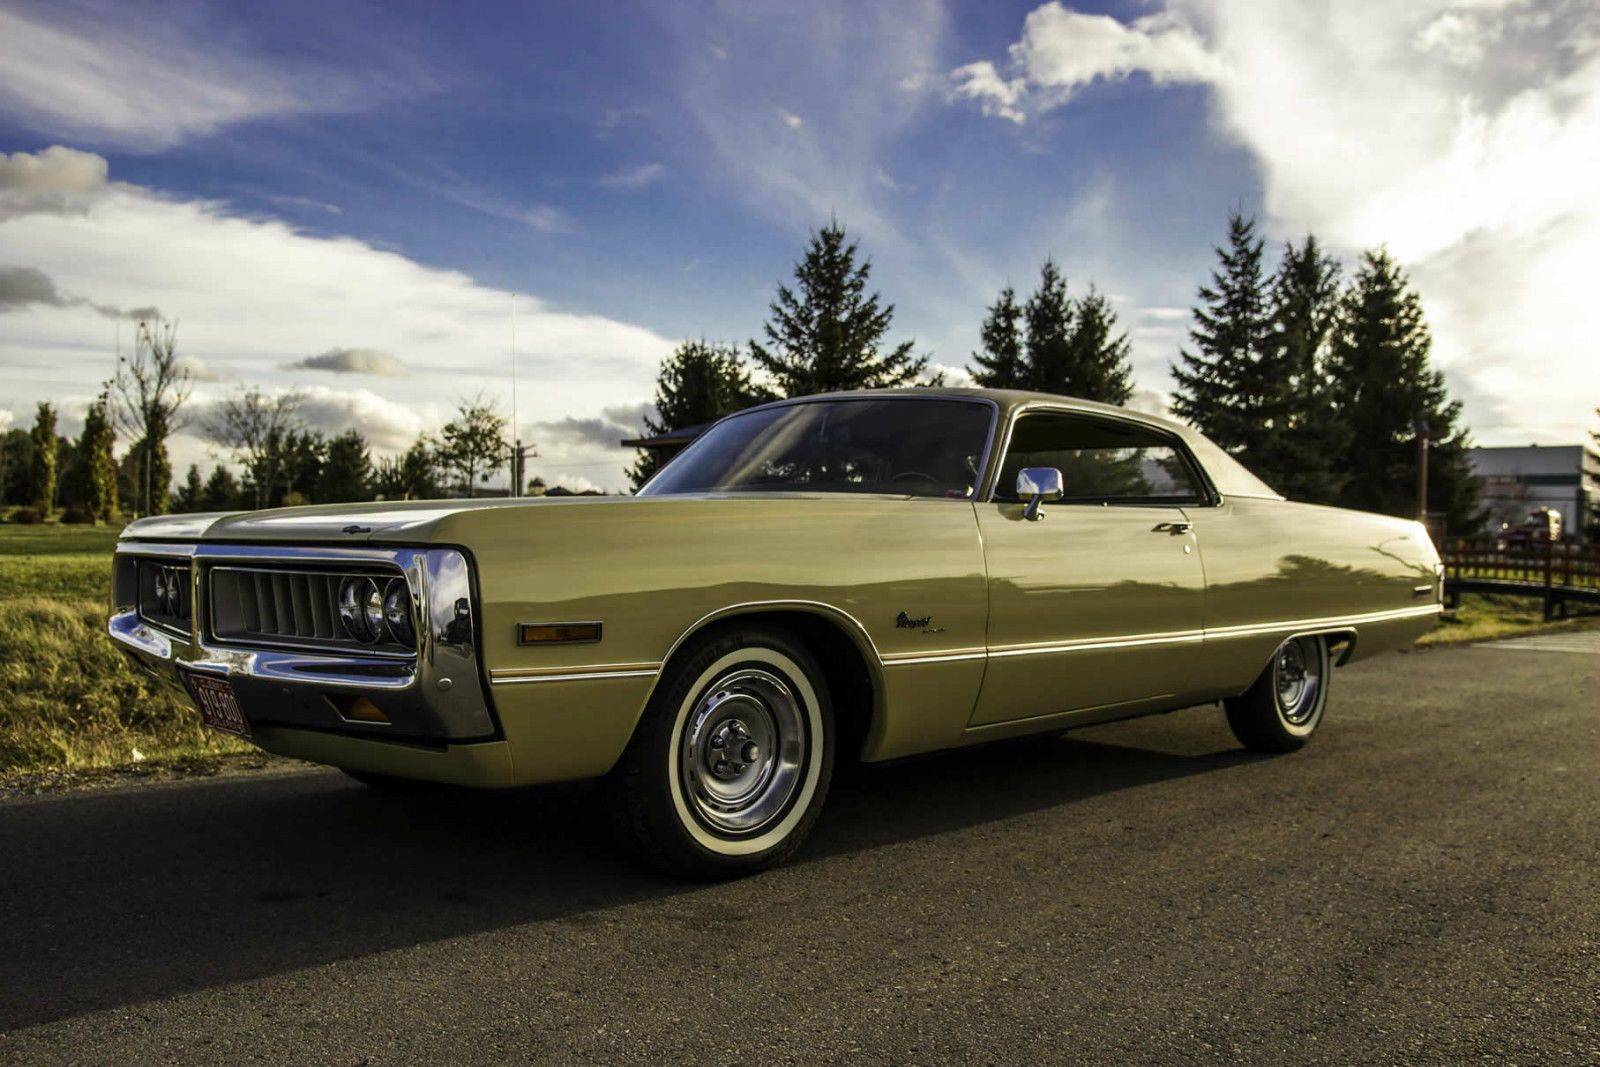 1972 Chrysler Newport Royal With Images Chrysler Chrysler